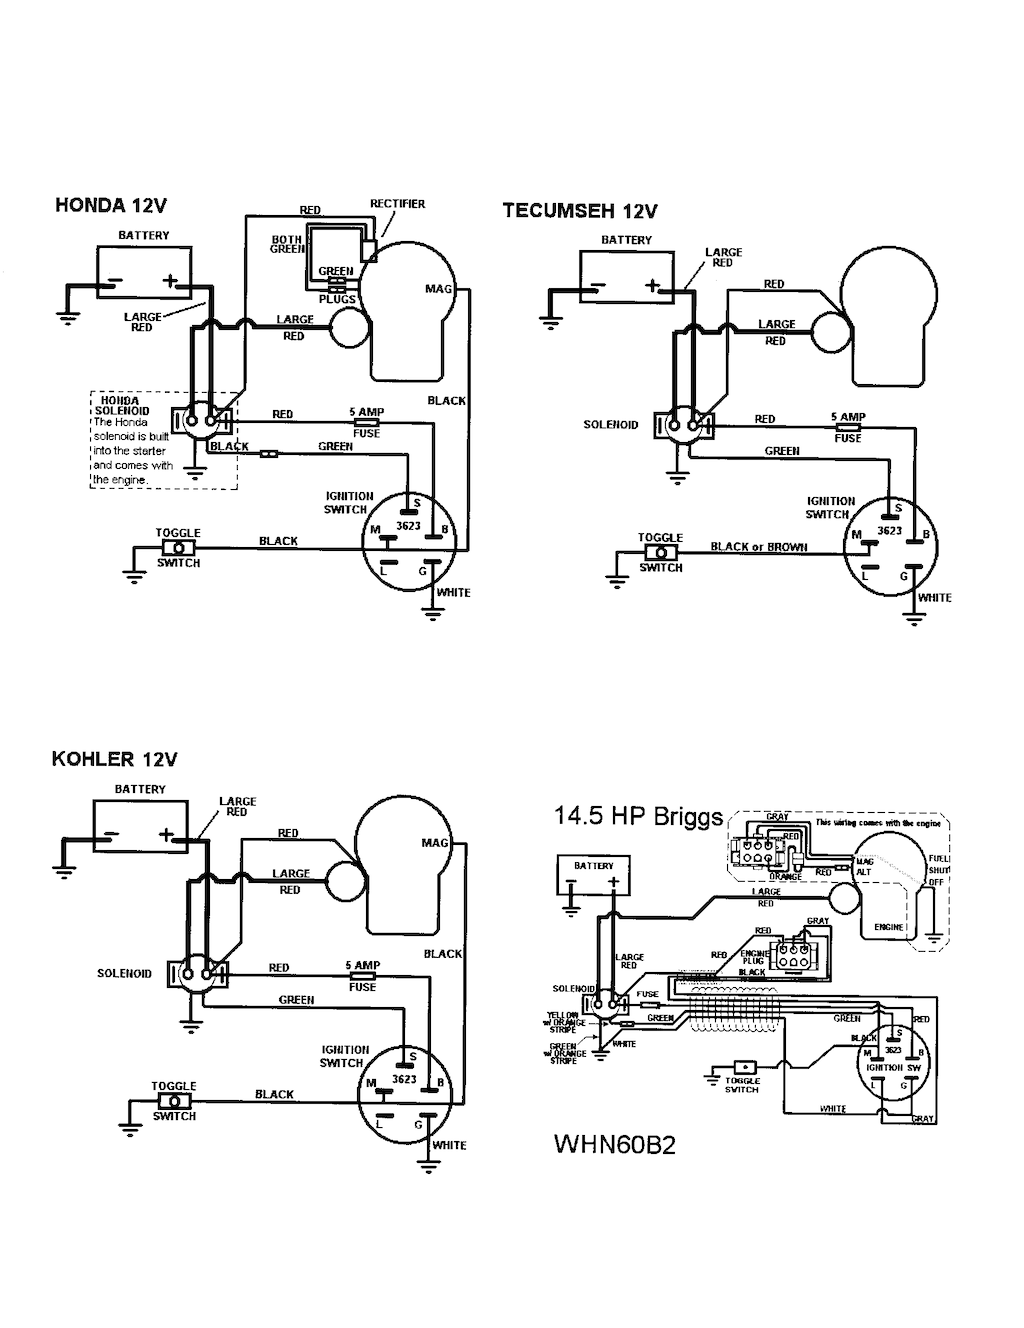 DIAGRAM] 60 Swisher Mower Wiring Diagram FULL Version HD Quality Wiring  Diagram - CATDIAGRAM.EVELYNEGAILLOU.FRDiagram Database